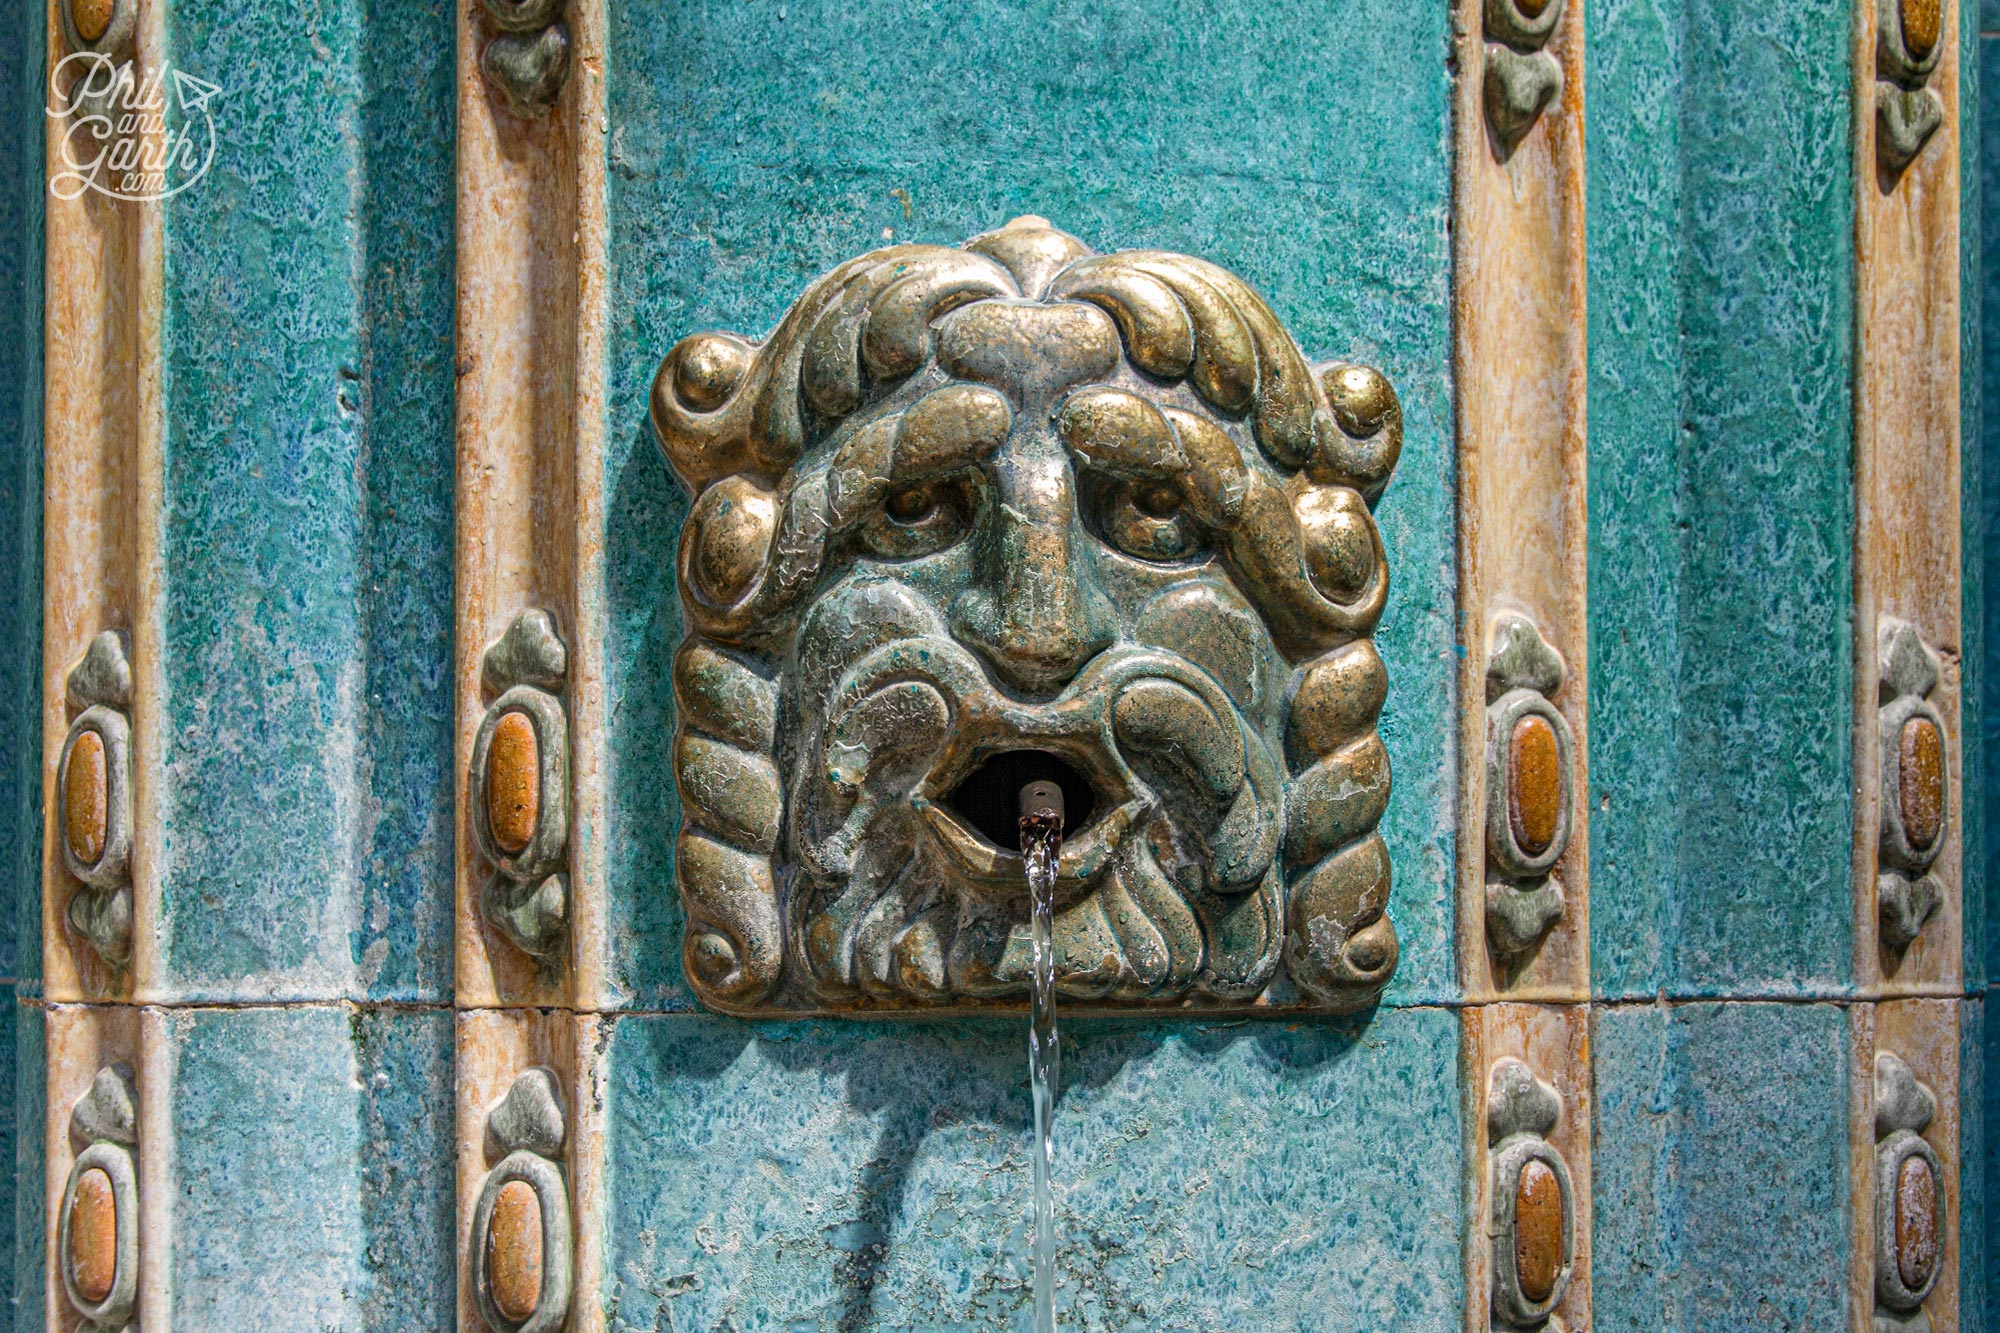 This face serves up hot water in the Gellért Spa